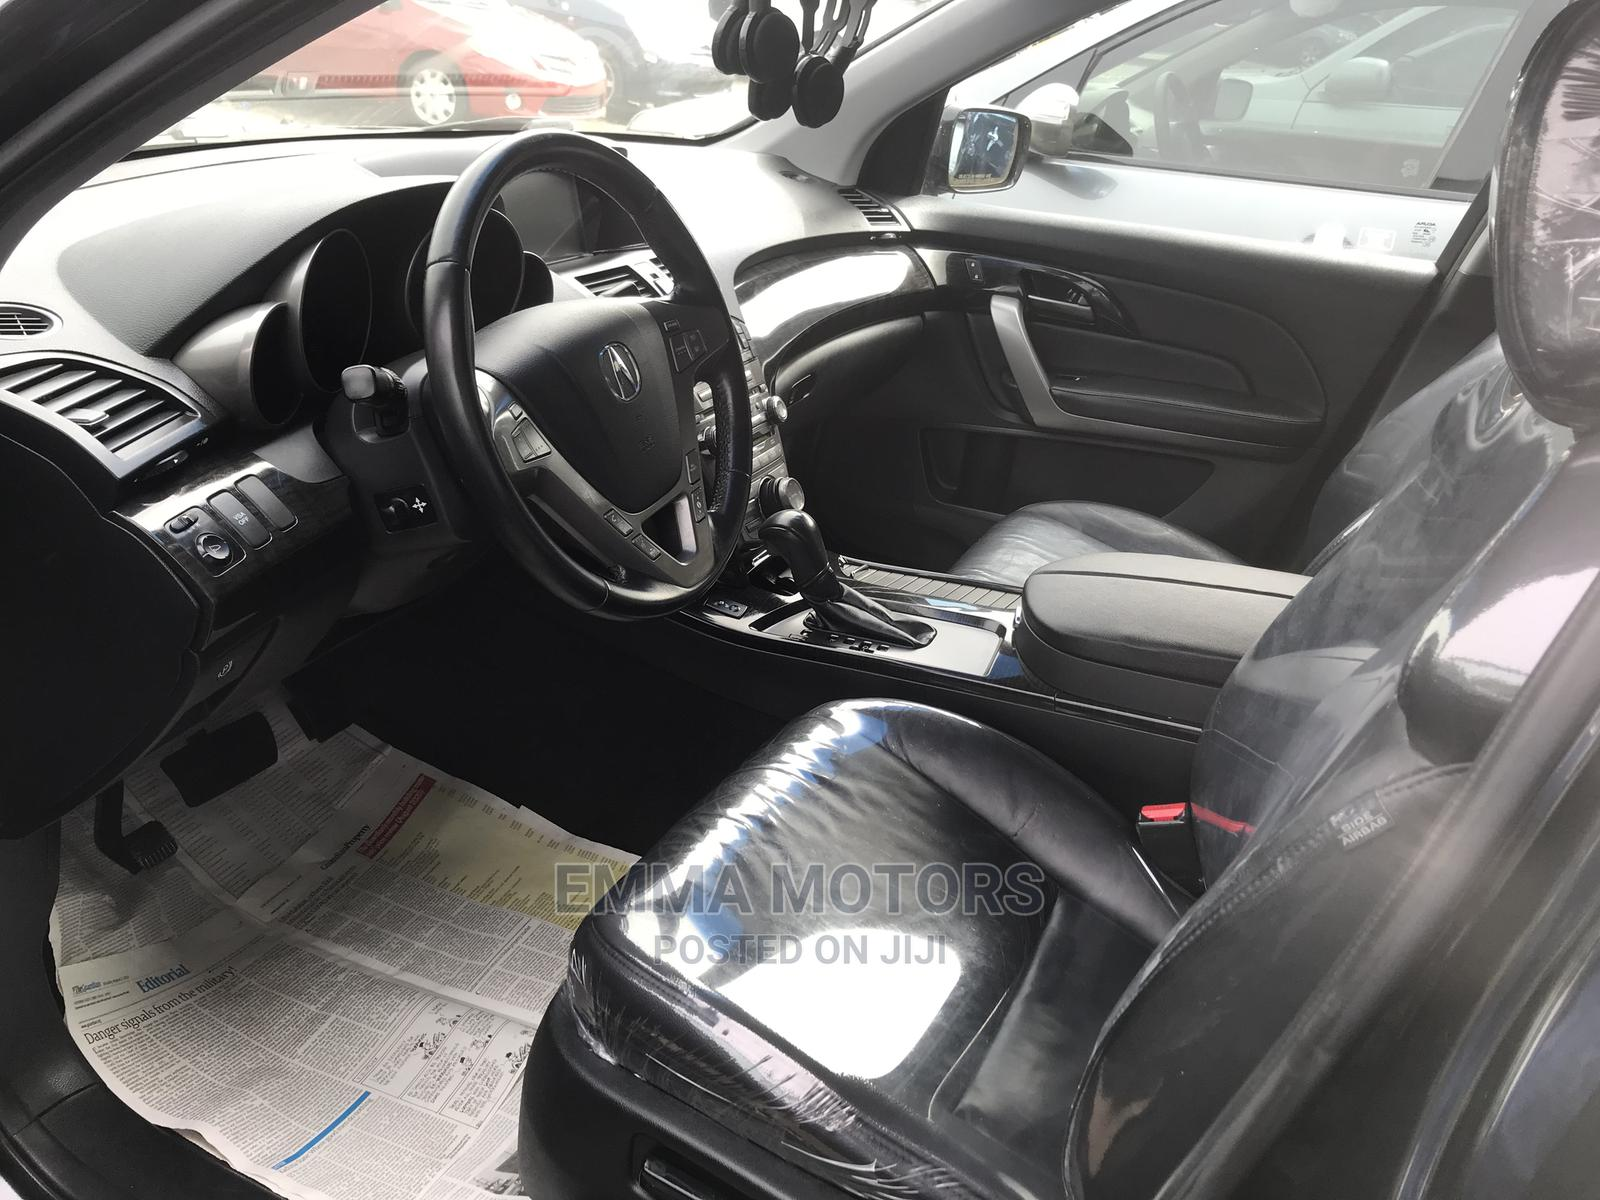 Acura MDX 2008 SUV 4dr AWD (3.7 6cyl 5A) Black   Cars for sale in Apapa, Lagos State, Nigeria